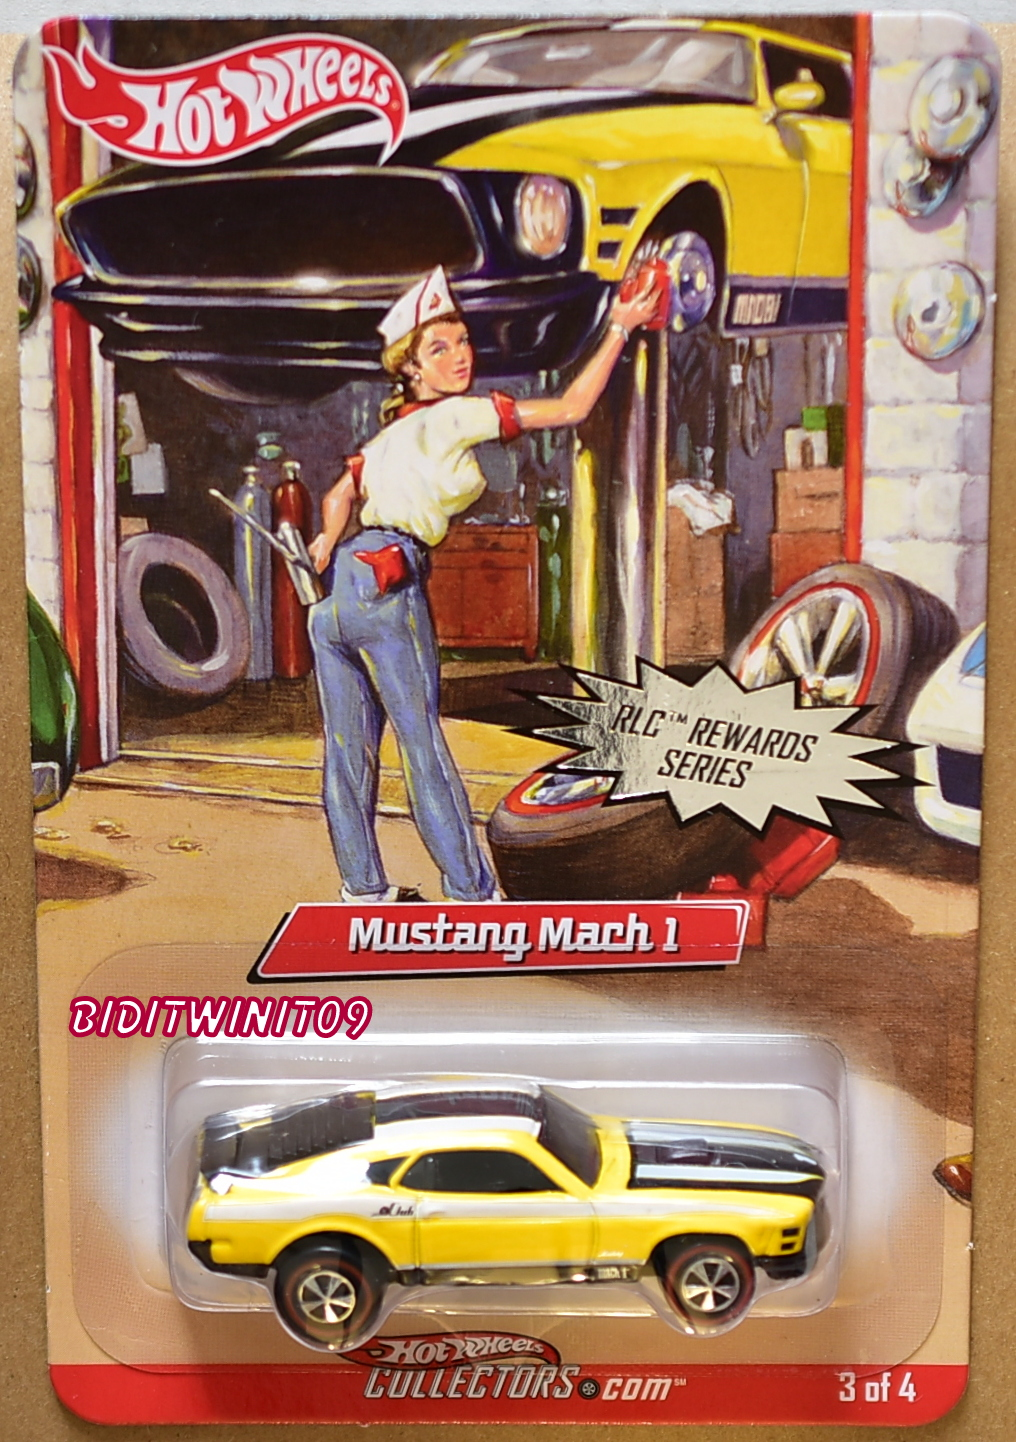 HOT WHEELS RLC REWARDS SERIES MUSTANG MACH 1 #3/4 YELLOW E+